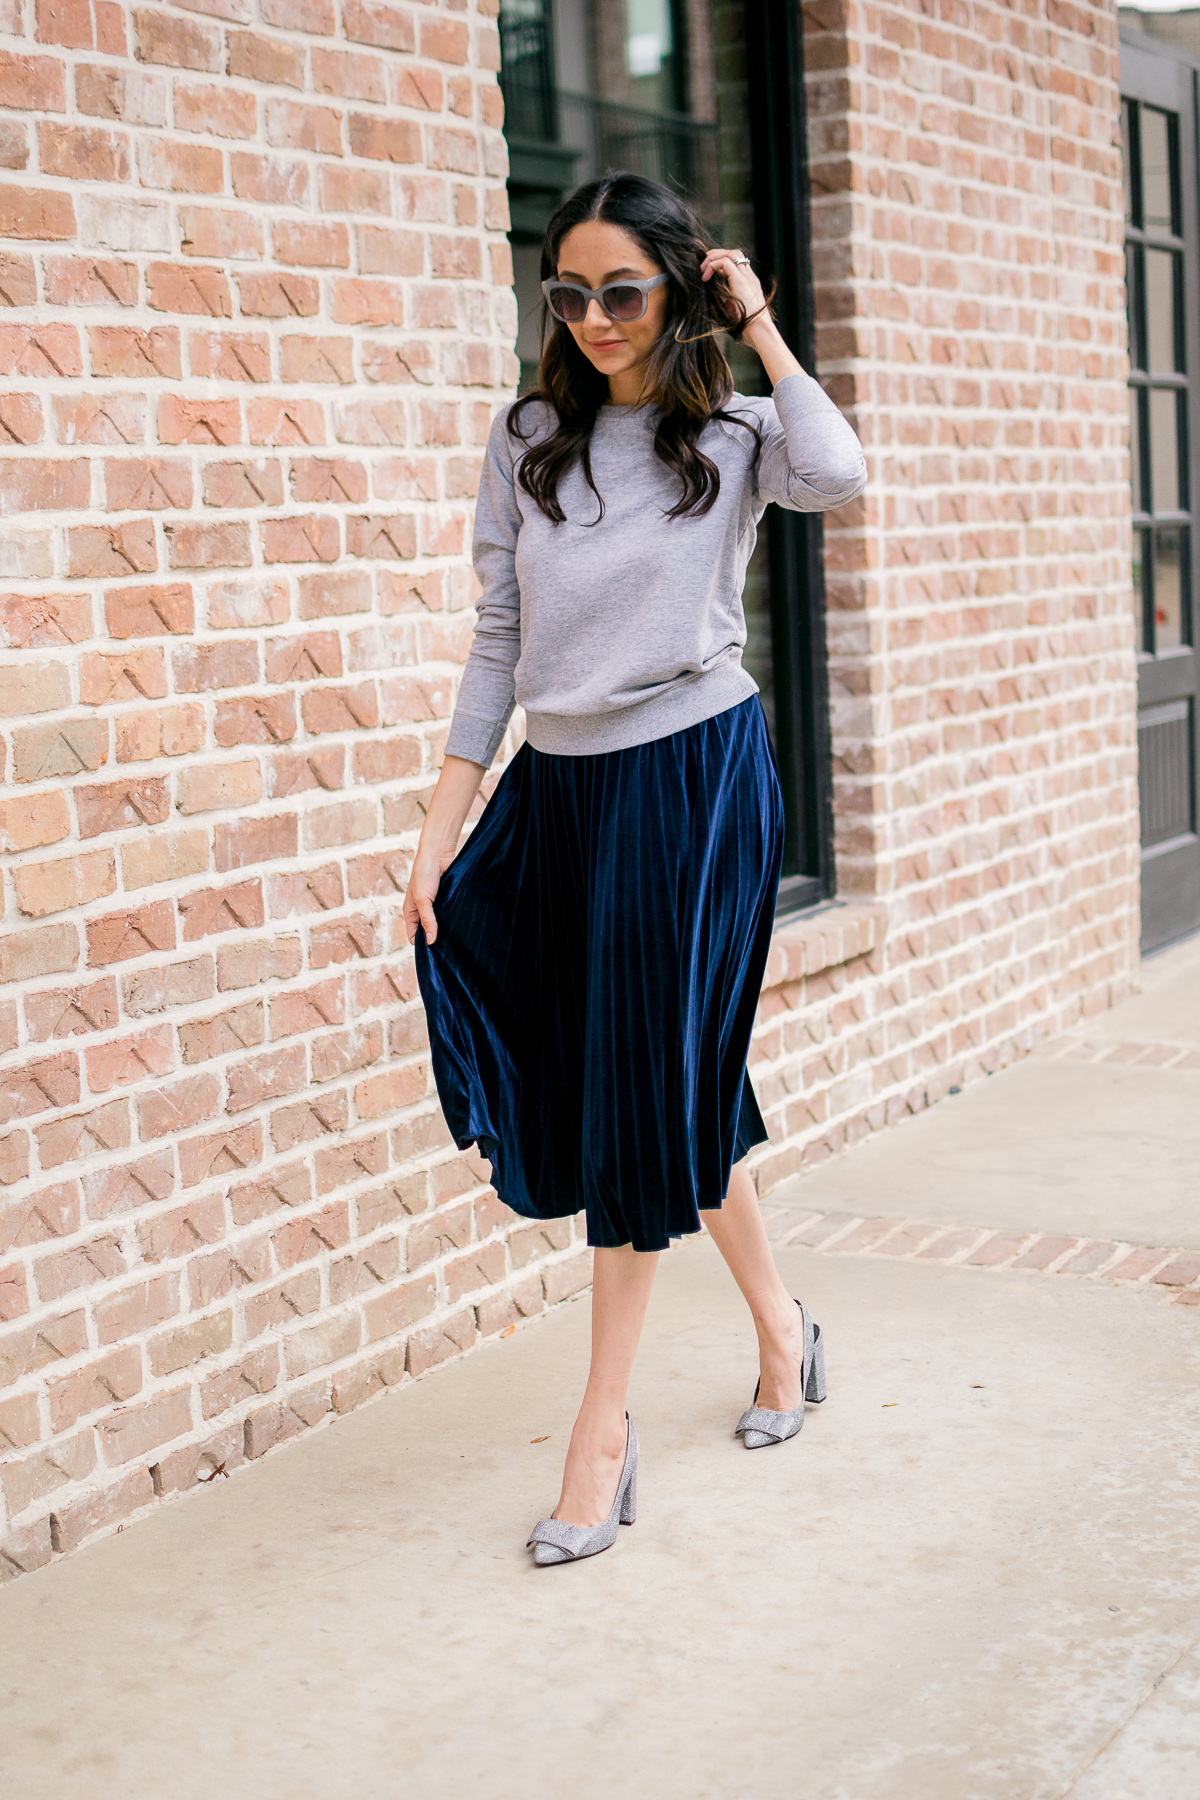 Blue Pleated Velvet Skirt + Silver Glitter Pumps | Daily Craving